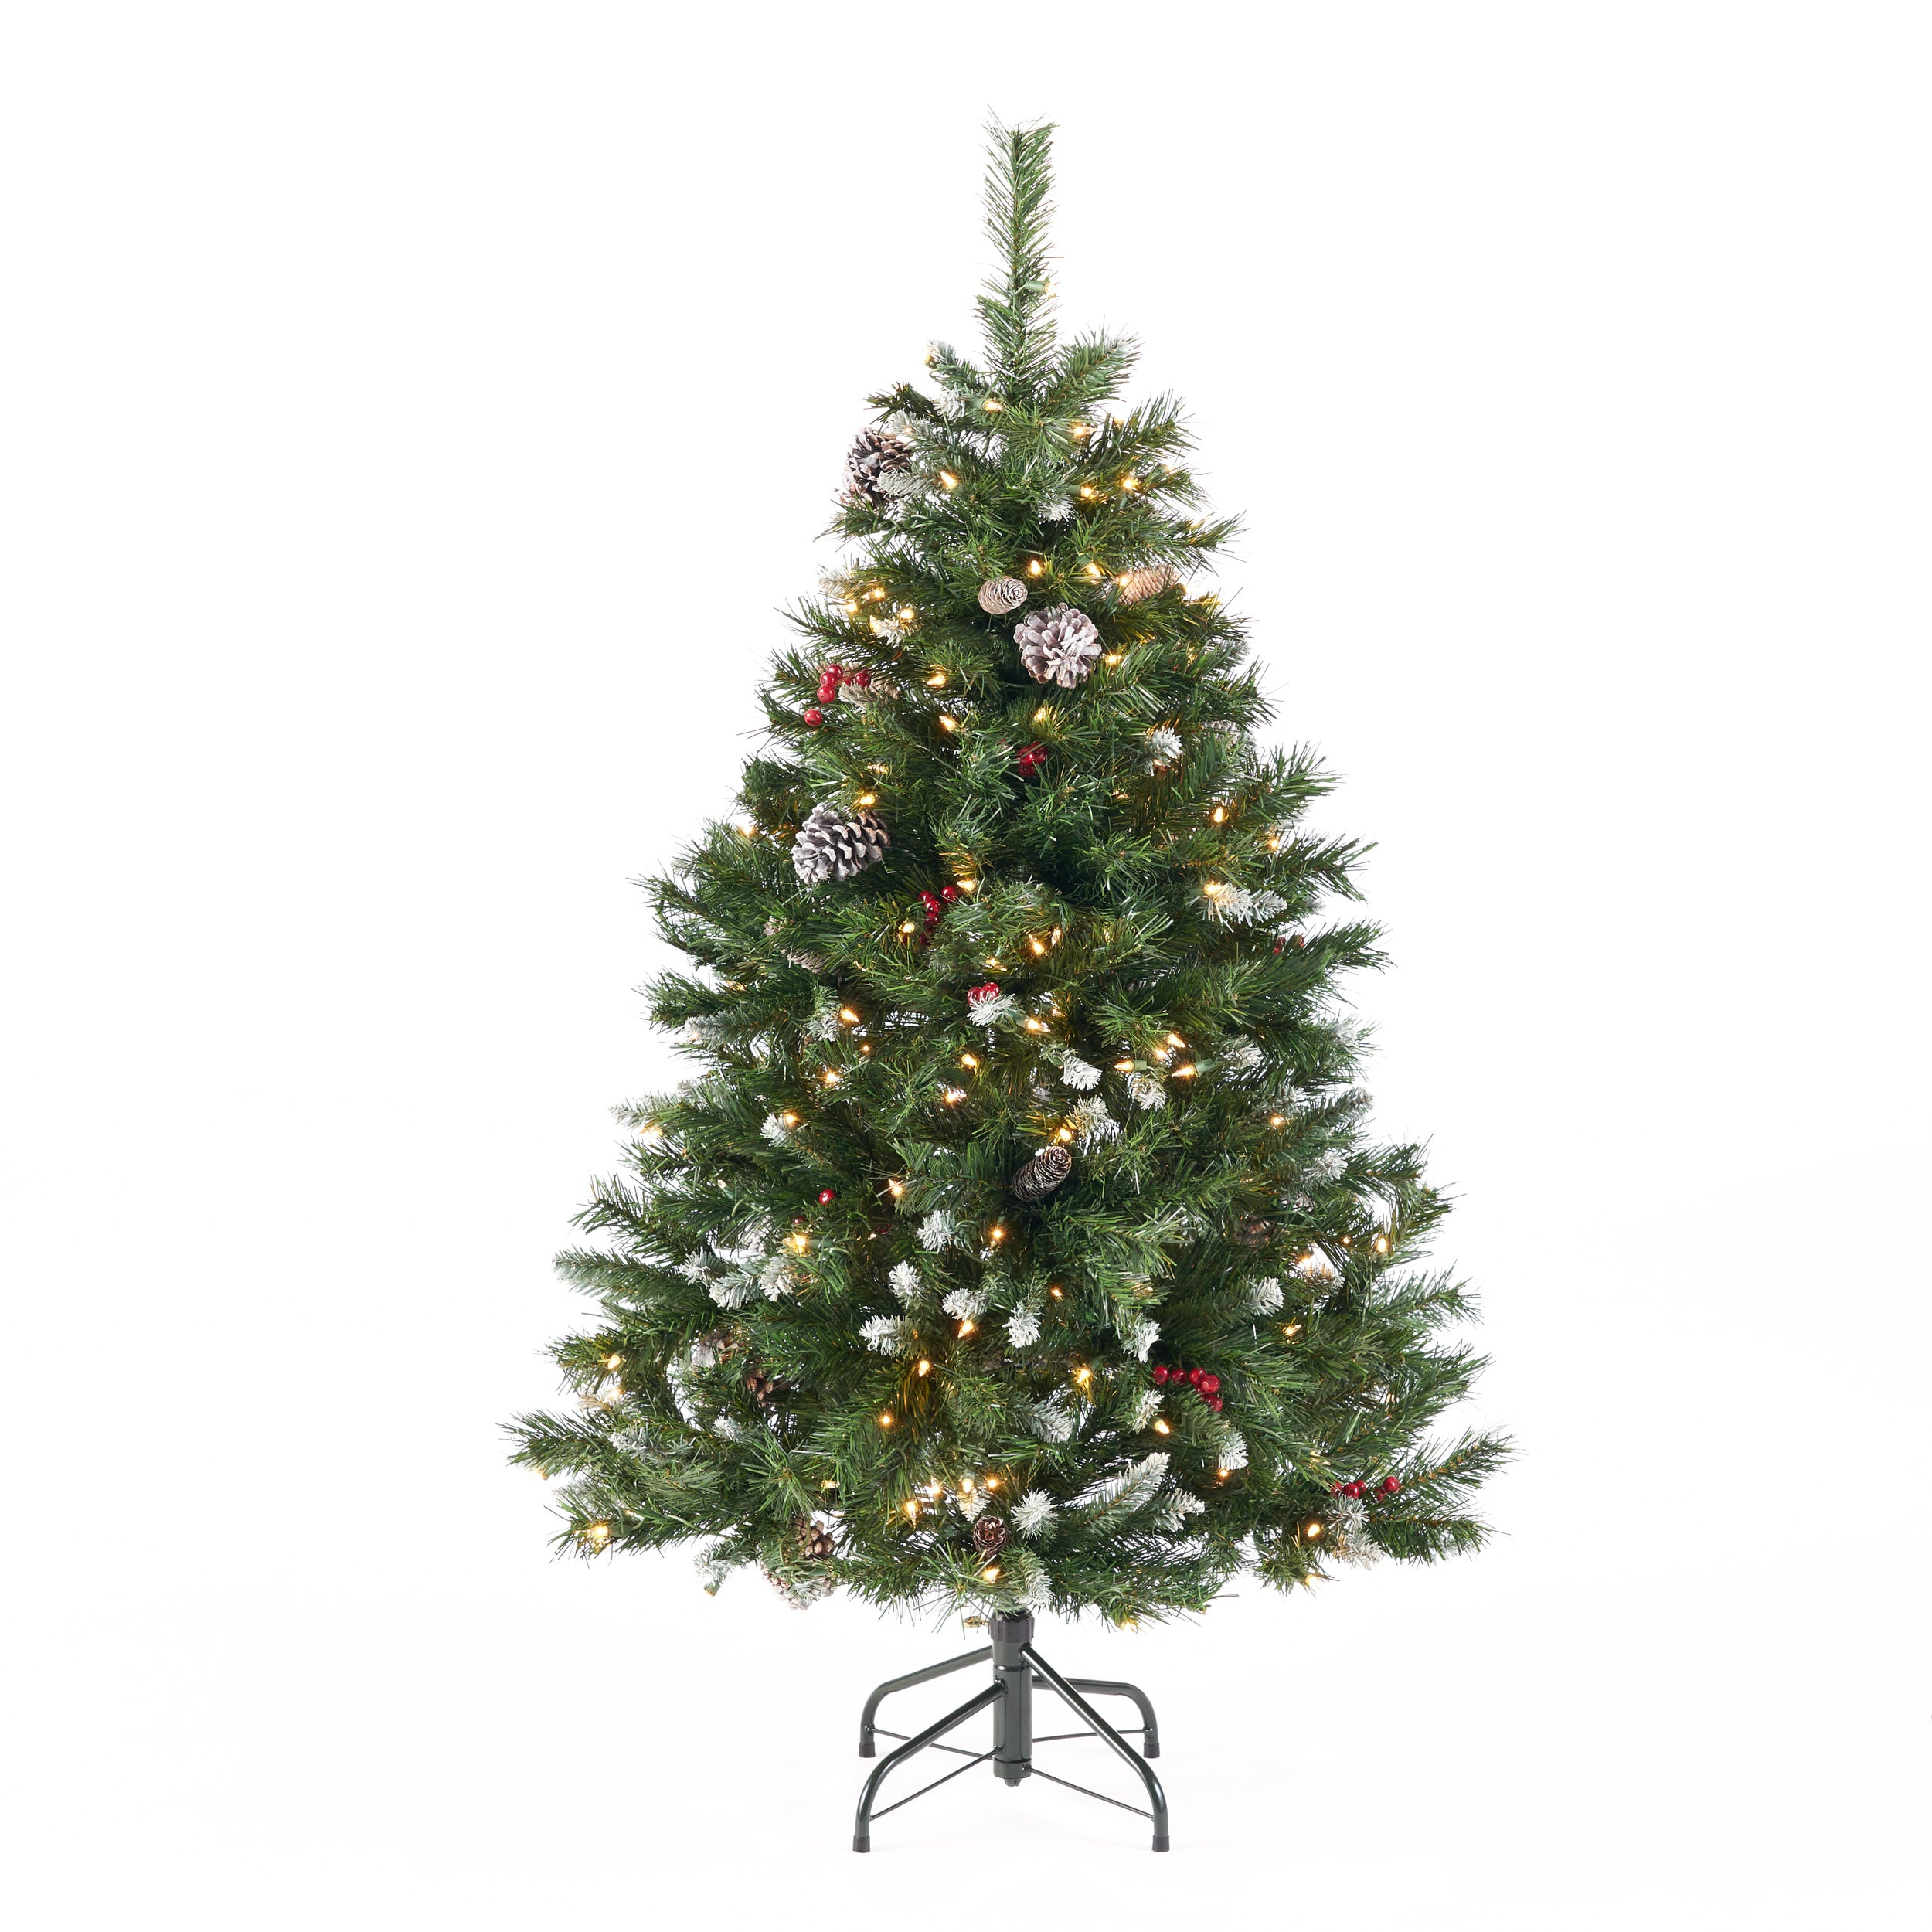 45 foot Mixed Spruce Hinged Artificial Christmas Tree with Frosted Branches Red Berries and Frosted Pinecones